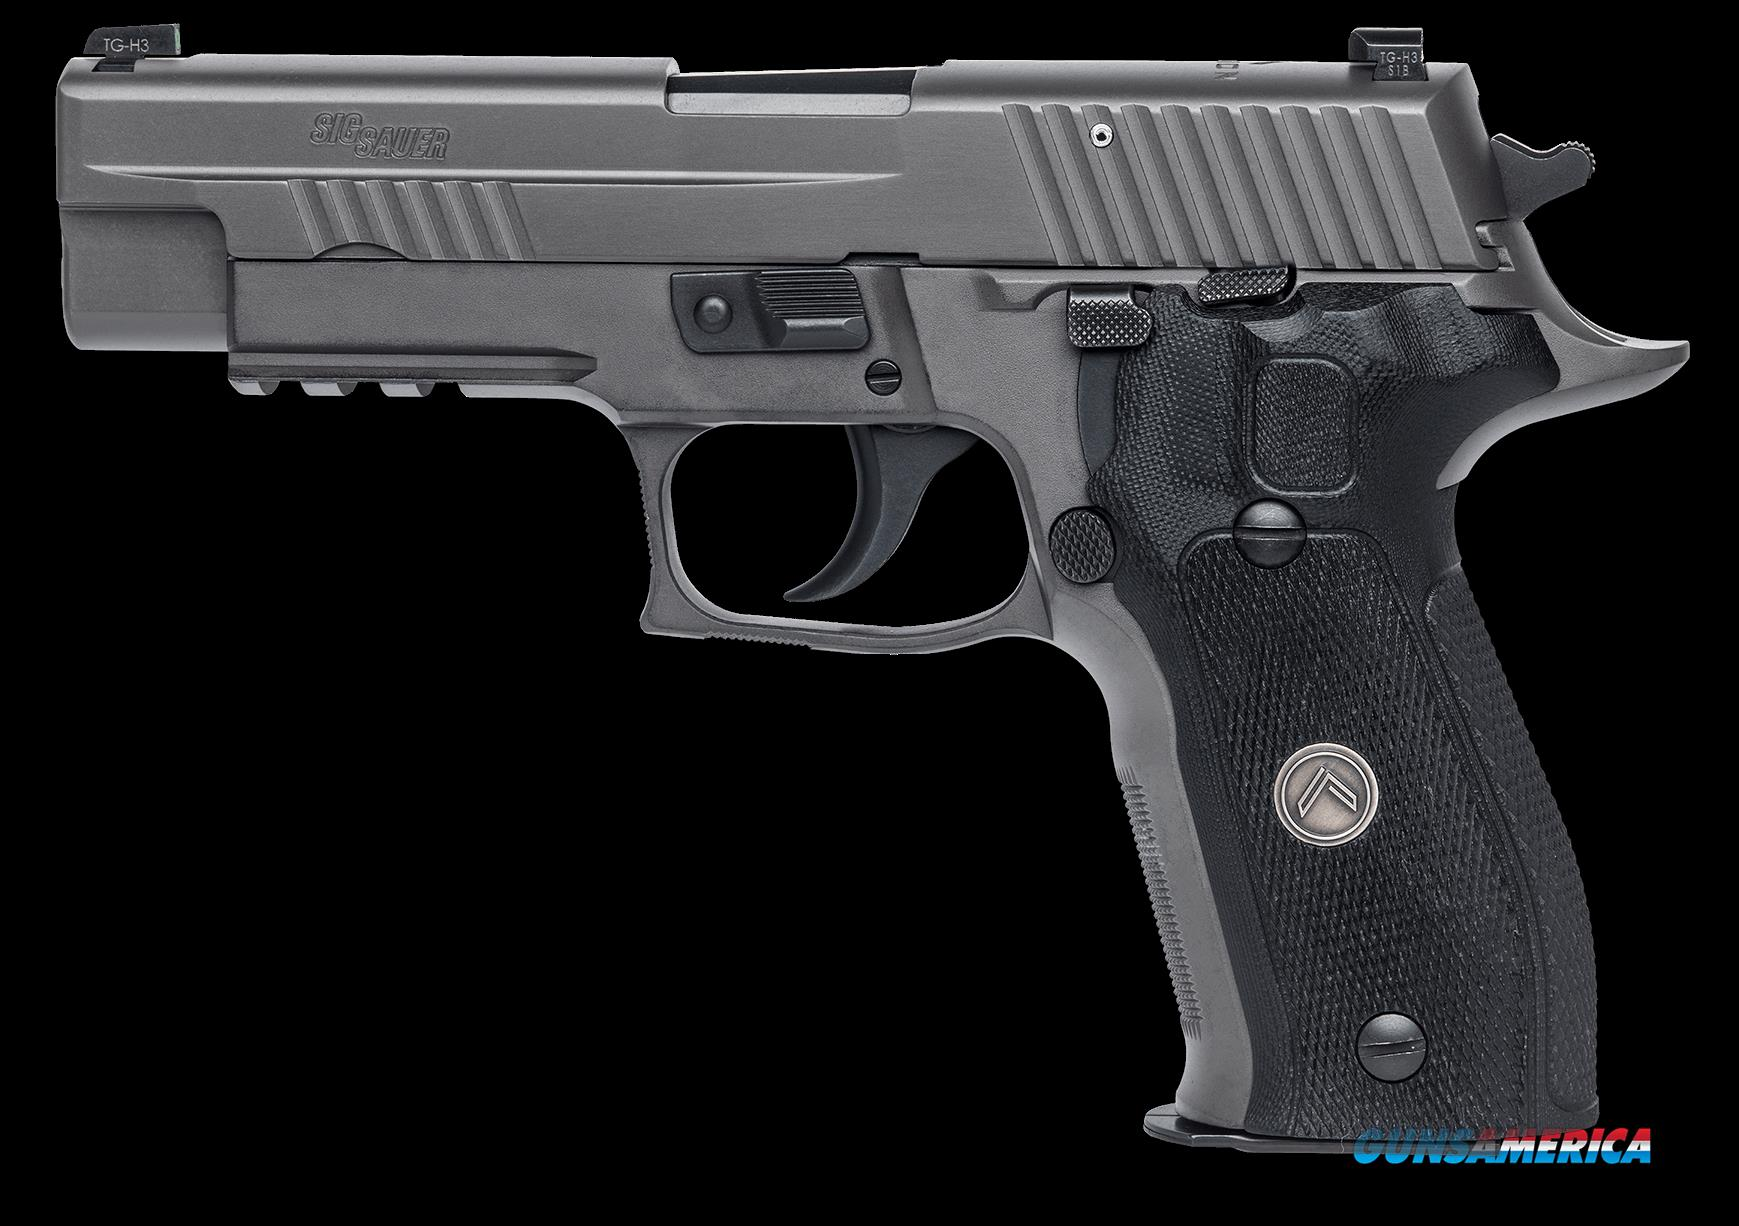 "Sig Sauer E26R357LEGIO P226 Full Size Legion Single/Double 357 Sig 4.4"" 12+1 Black G10 Grip Gray PVD  Guns > Pistols > Sig - Sauer/Sigarms Pistols > P226"